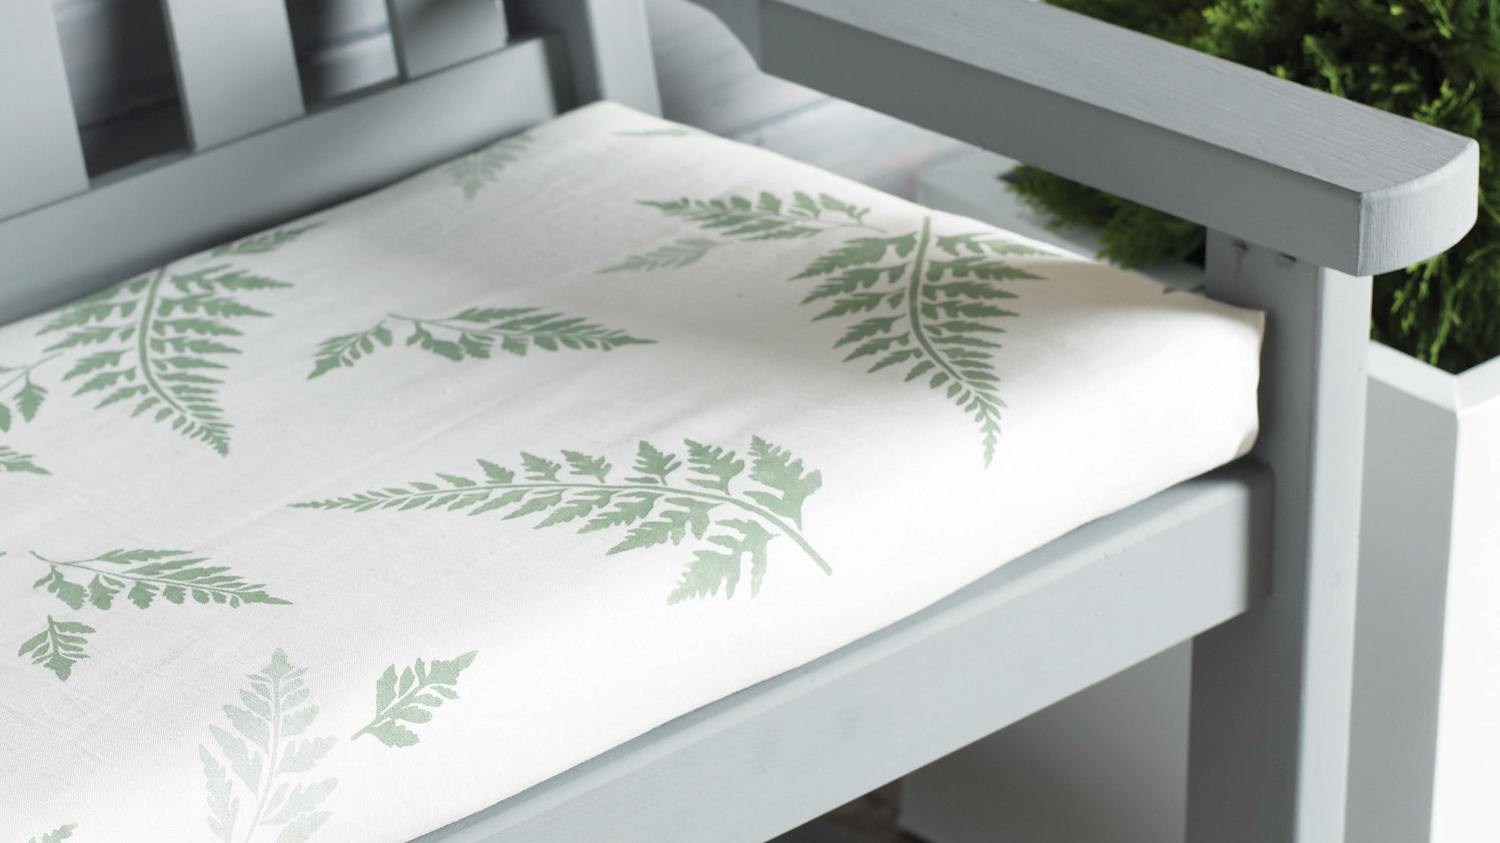 [%Hot Deals: 60% Off Highland Dunes Gilbreath Daybed With With Famous Gilbreath Daybeds With Cushions|Gilbreath Daybeds With Cushions Intended For Well Known Hot Deals: 60% Off Highland Dunes Gilbreath Daybed With|Trendy Gilbreath Daybeds With Cushions Within Hot Deals: 60% Off Highland Dunes Gilbreath Daybed With|Well Known Hot Deals: 60% Off Highland Dunes Gilbreath Daybed With Within Gilbreath Daybeds With Cushions%] (View 1 of 20)